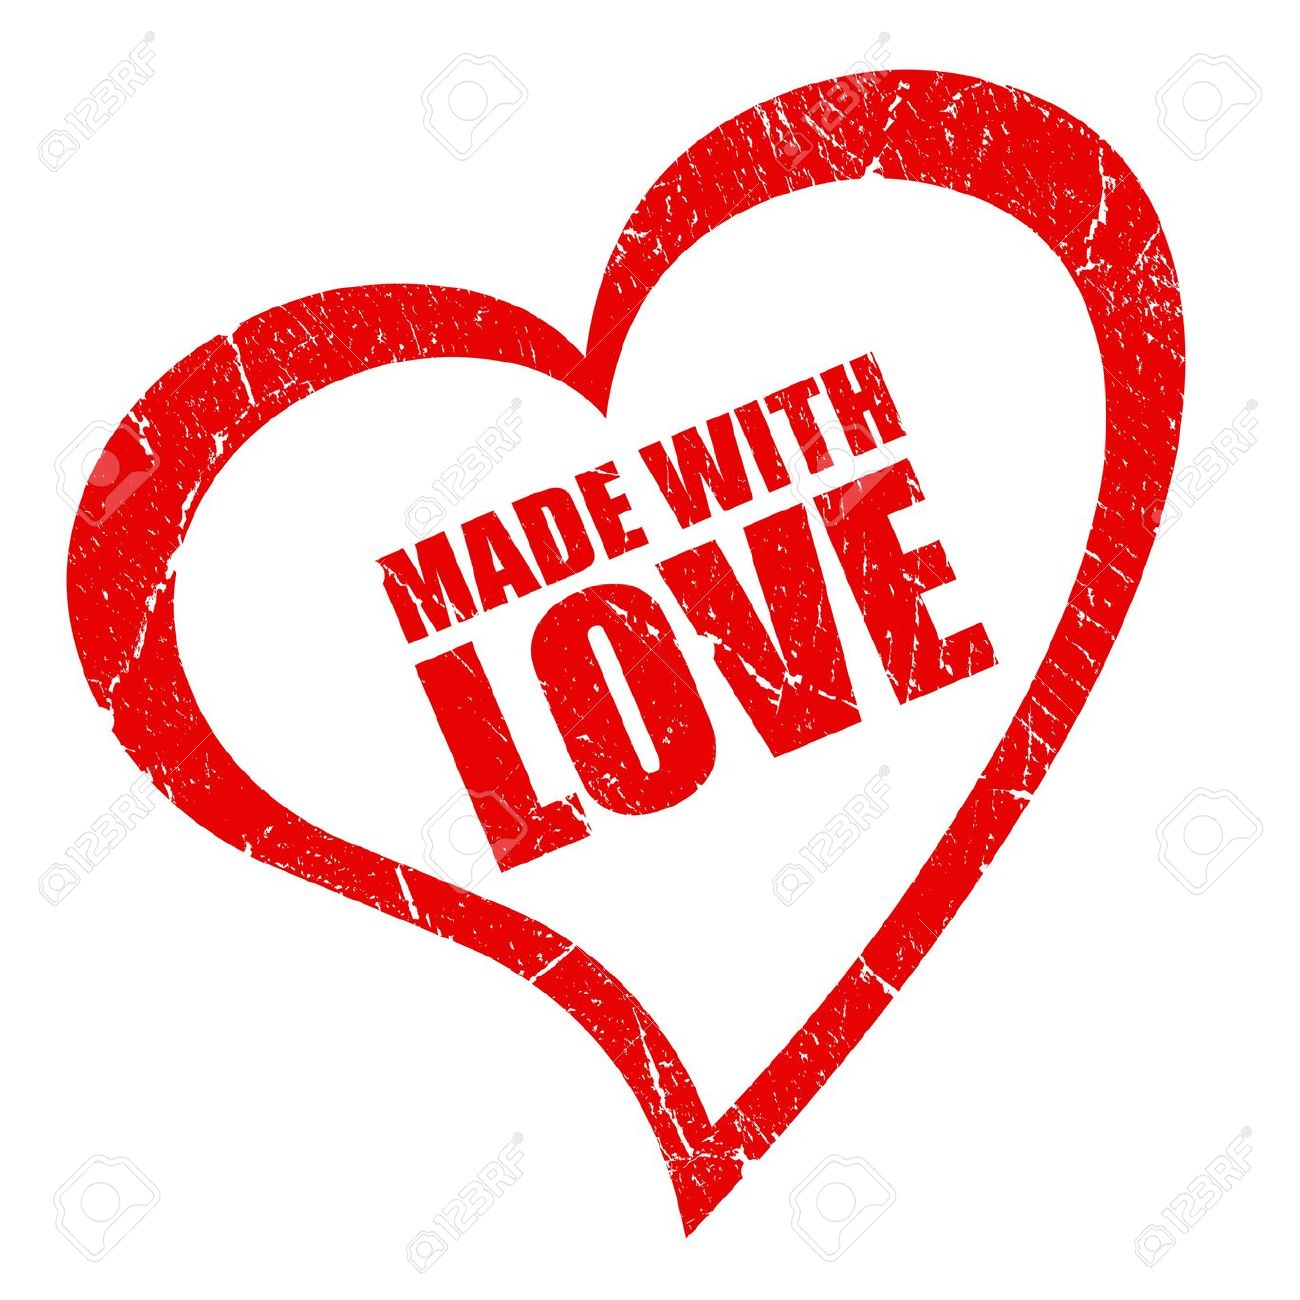 Made With Love Symbol Stock Photo Picture And Royalty Free Image